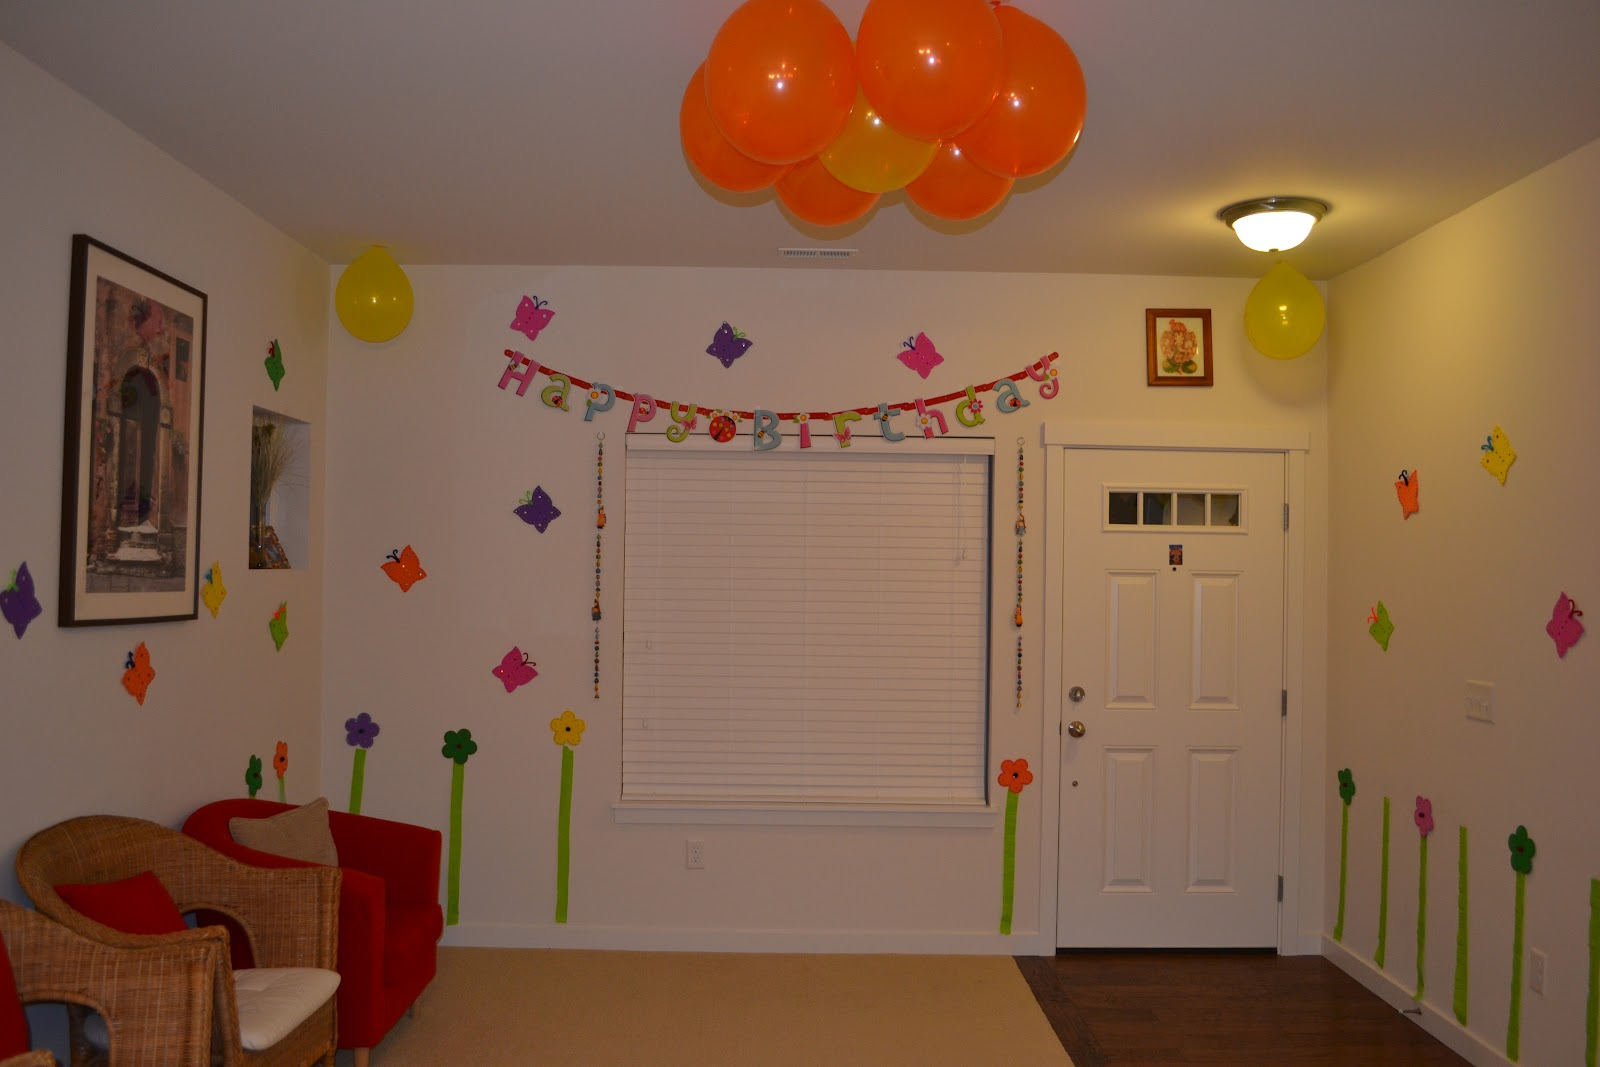 Simple decoration ideas for birthday party at home image for Birthday home decorations